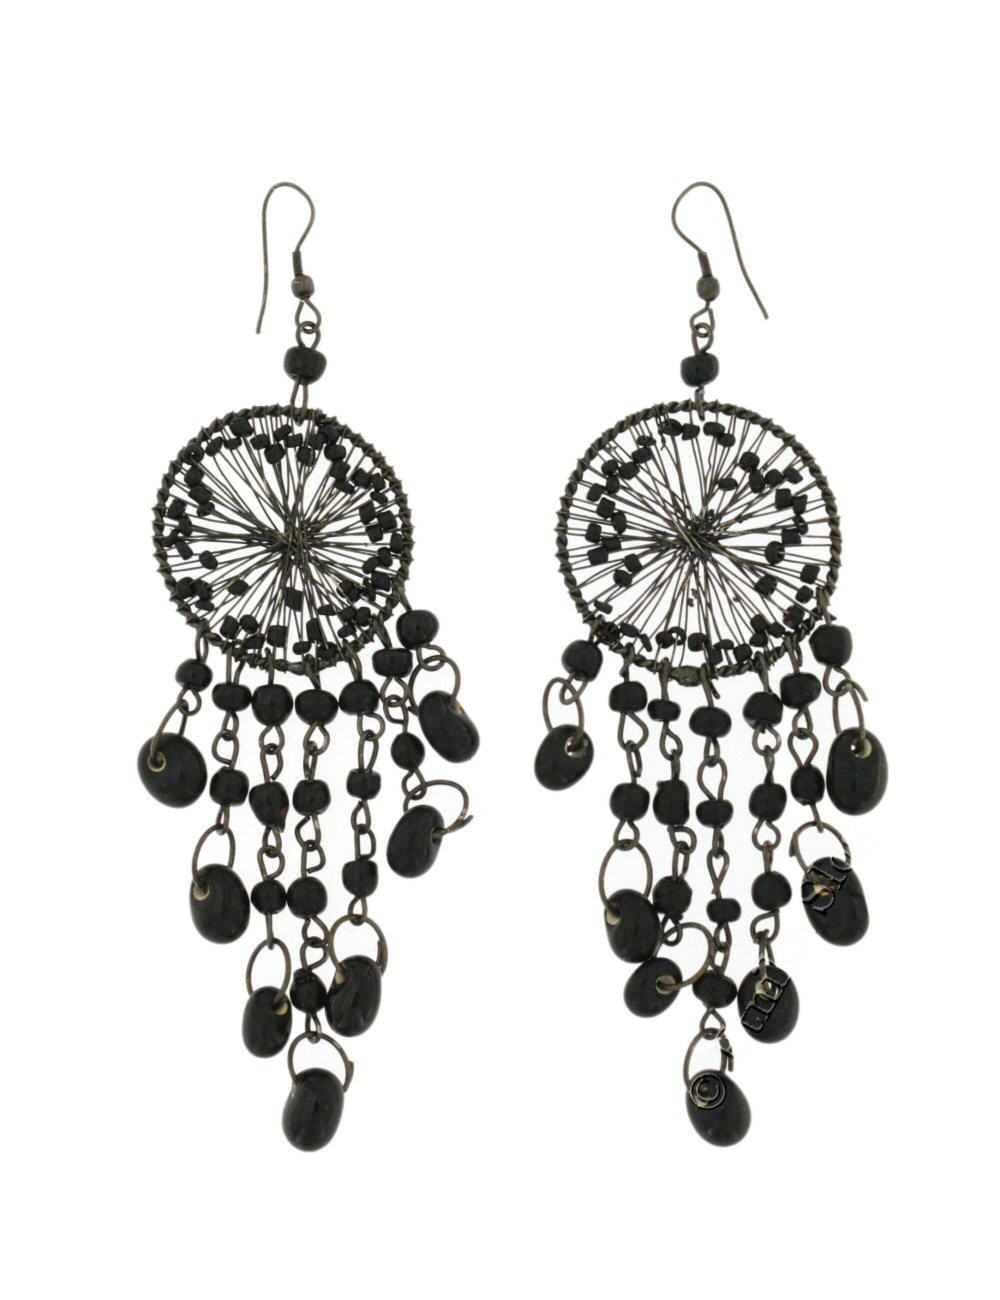 BEADS RINGS AND EARRINGS PE-OR02 - Oriente Import S.r.l.